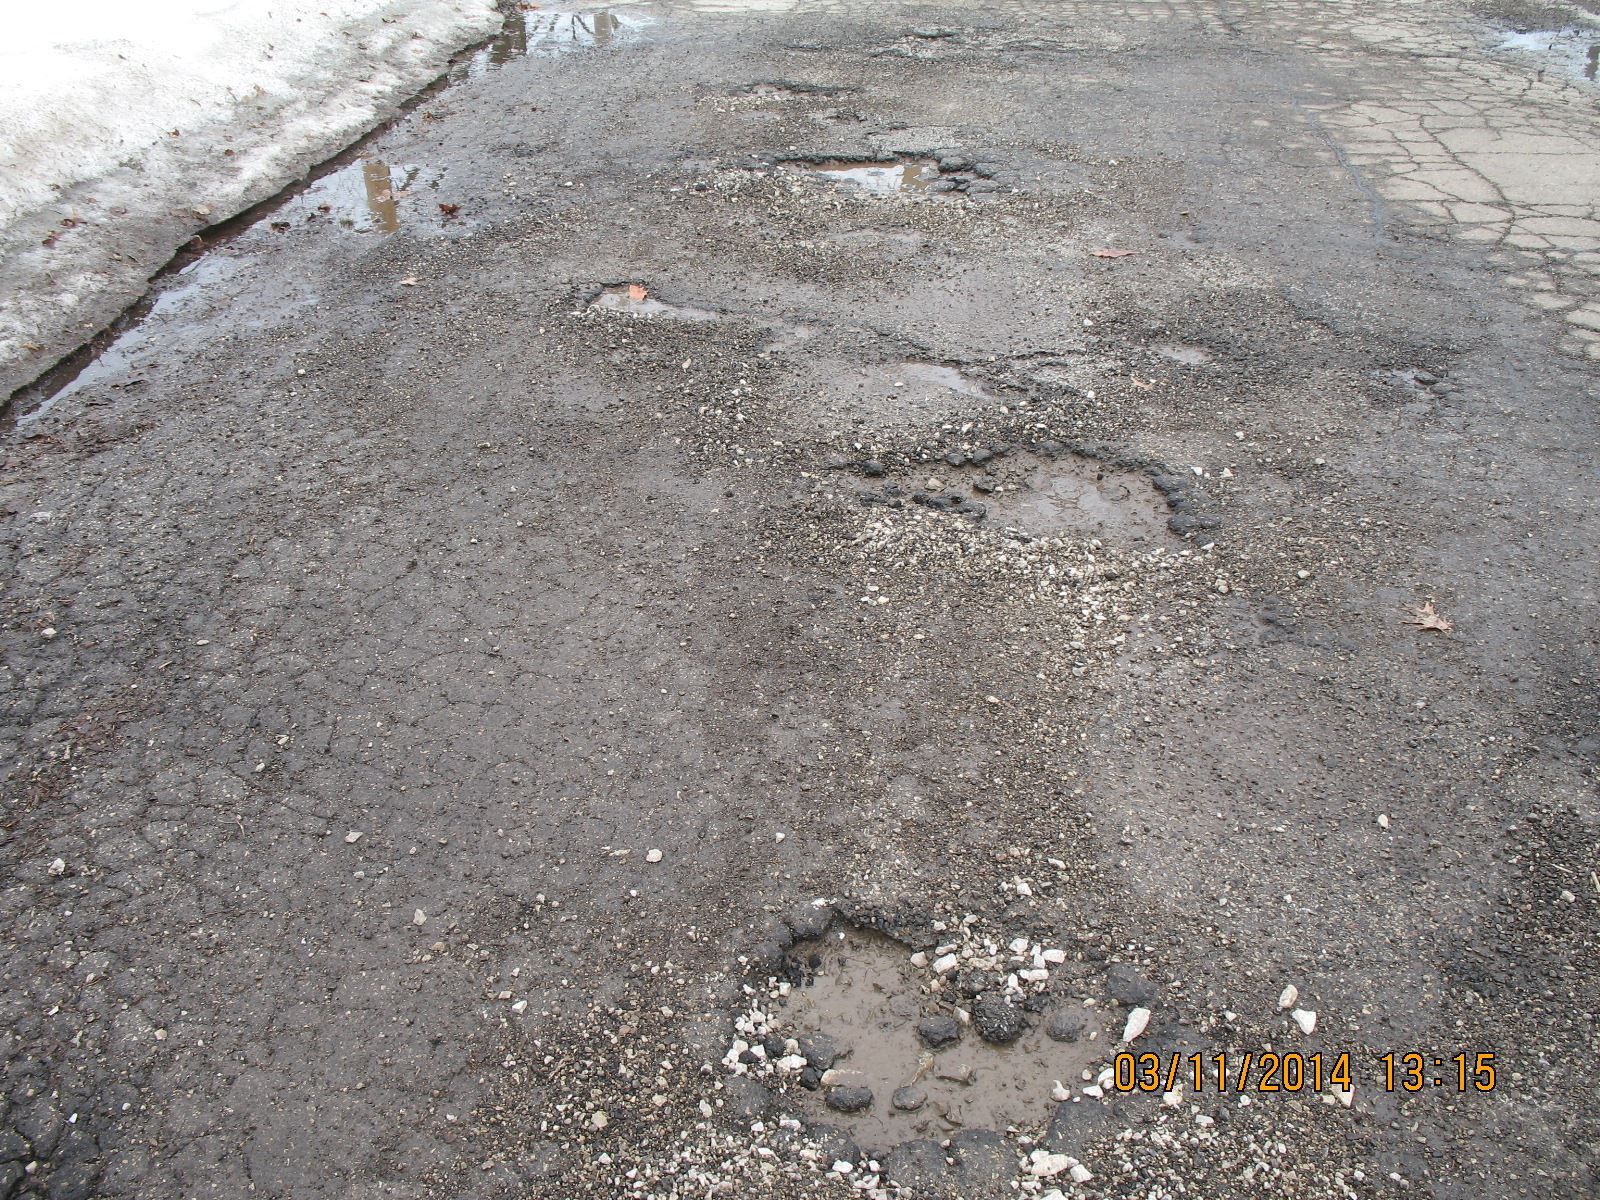 Potholes and Cracks in Asphalt of a Street